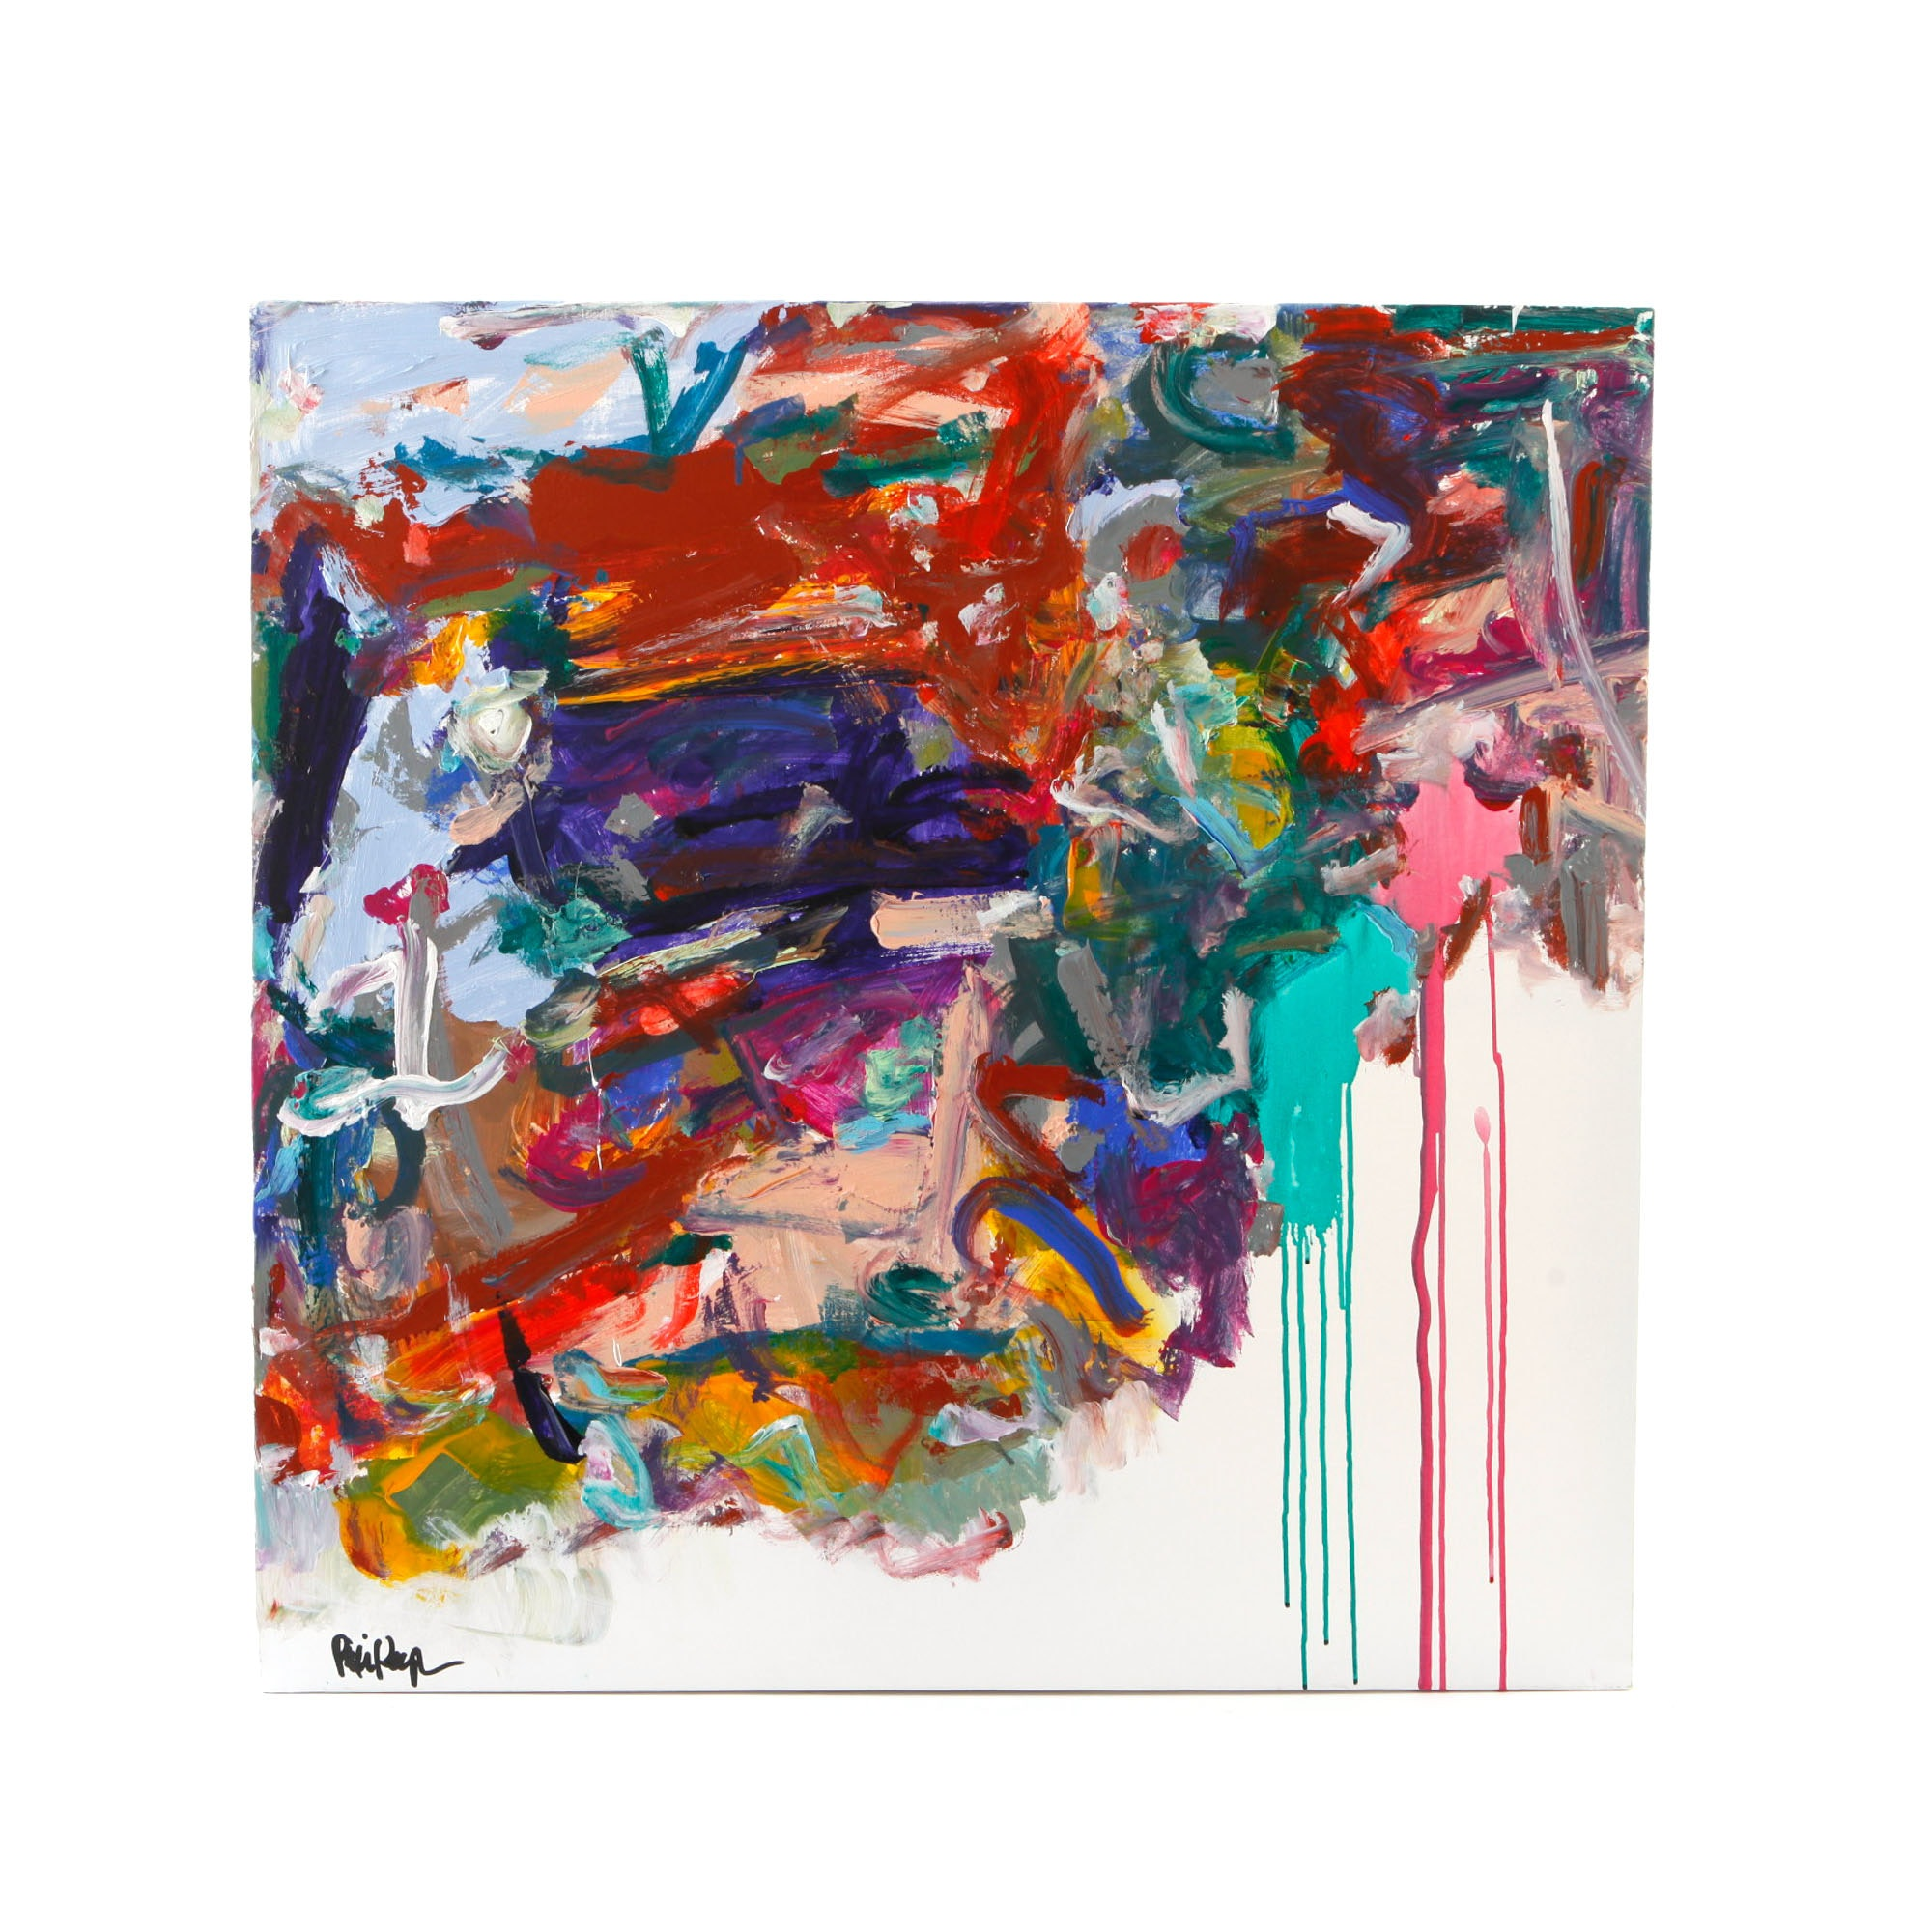 """Robbie Kemper Signed Acrylic Painting """"2 Run Spots with Color"""""""